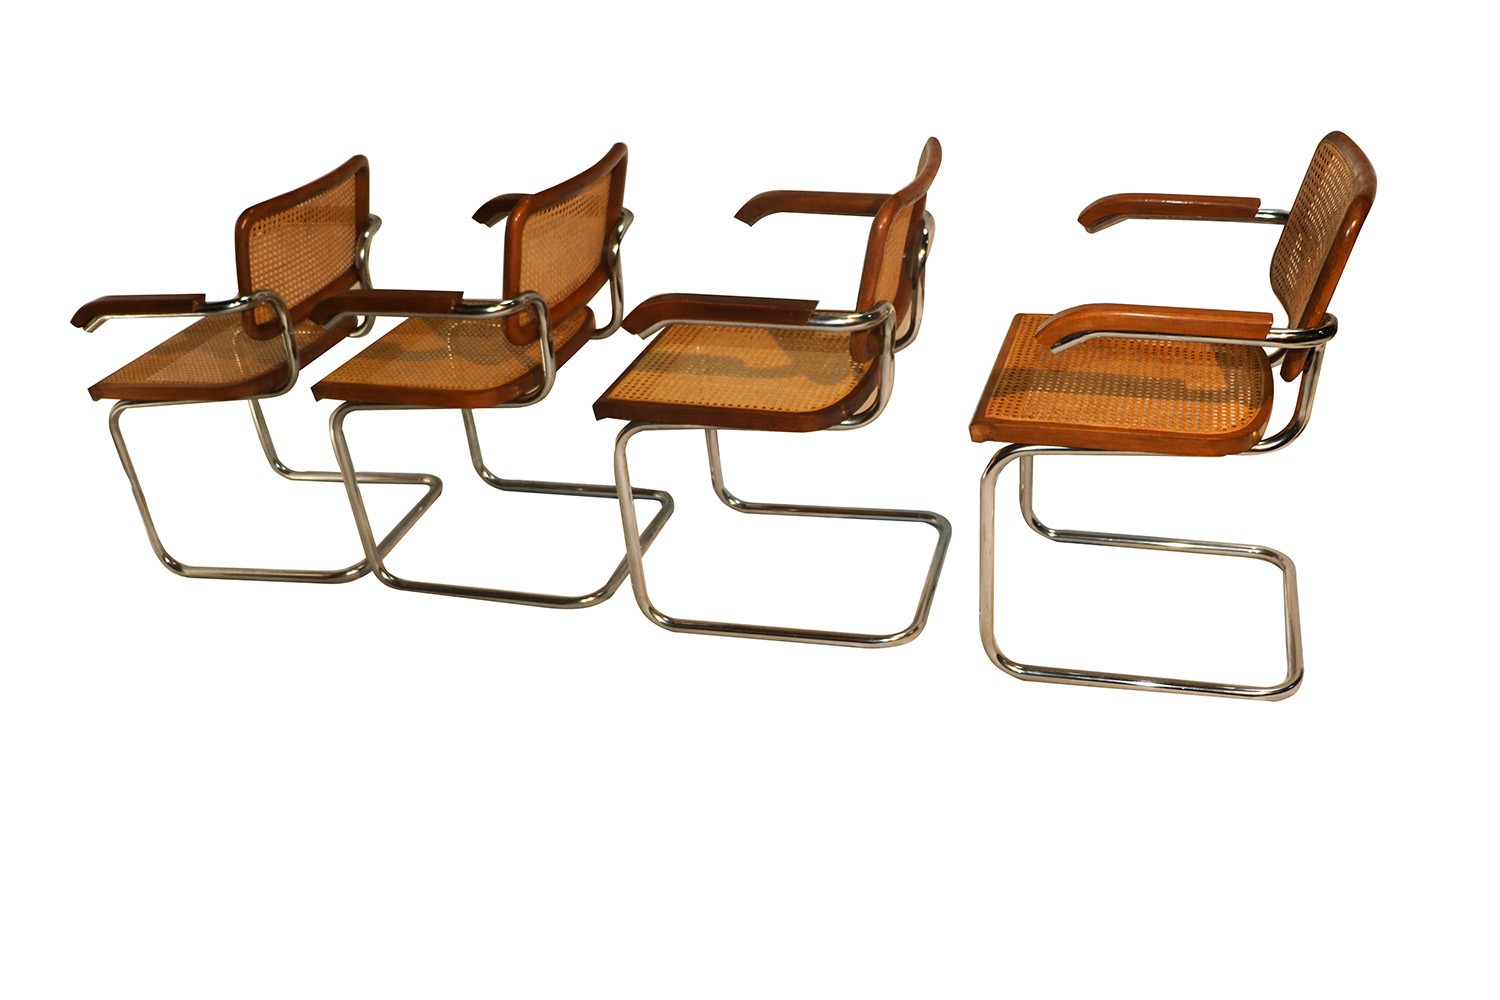 marcel breuer cesca chair with armrests green 2013 korean movie style cane arm chairs